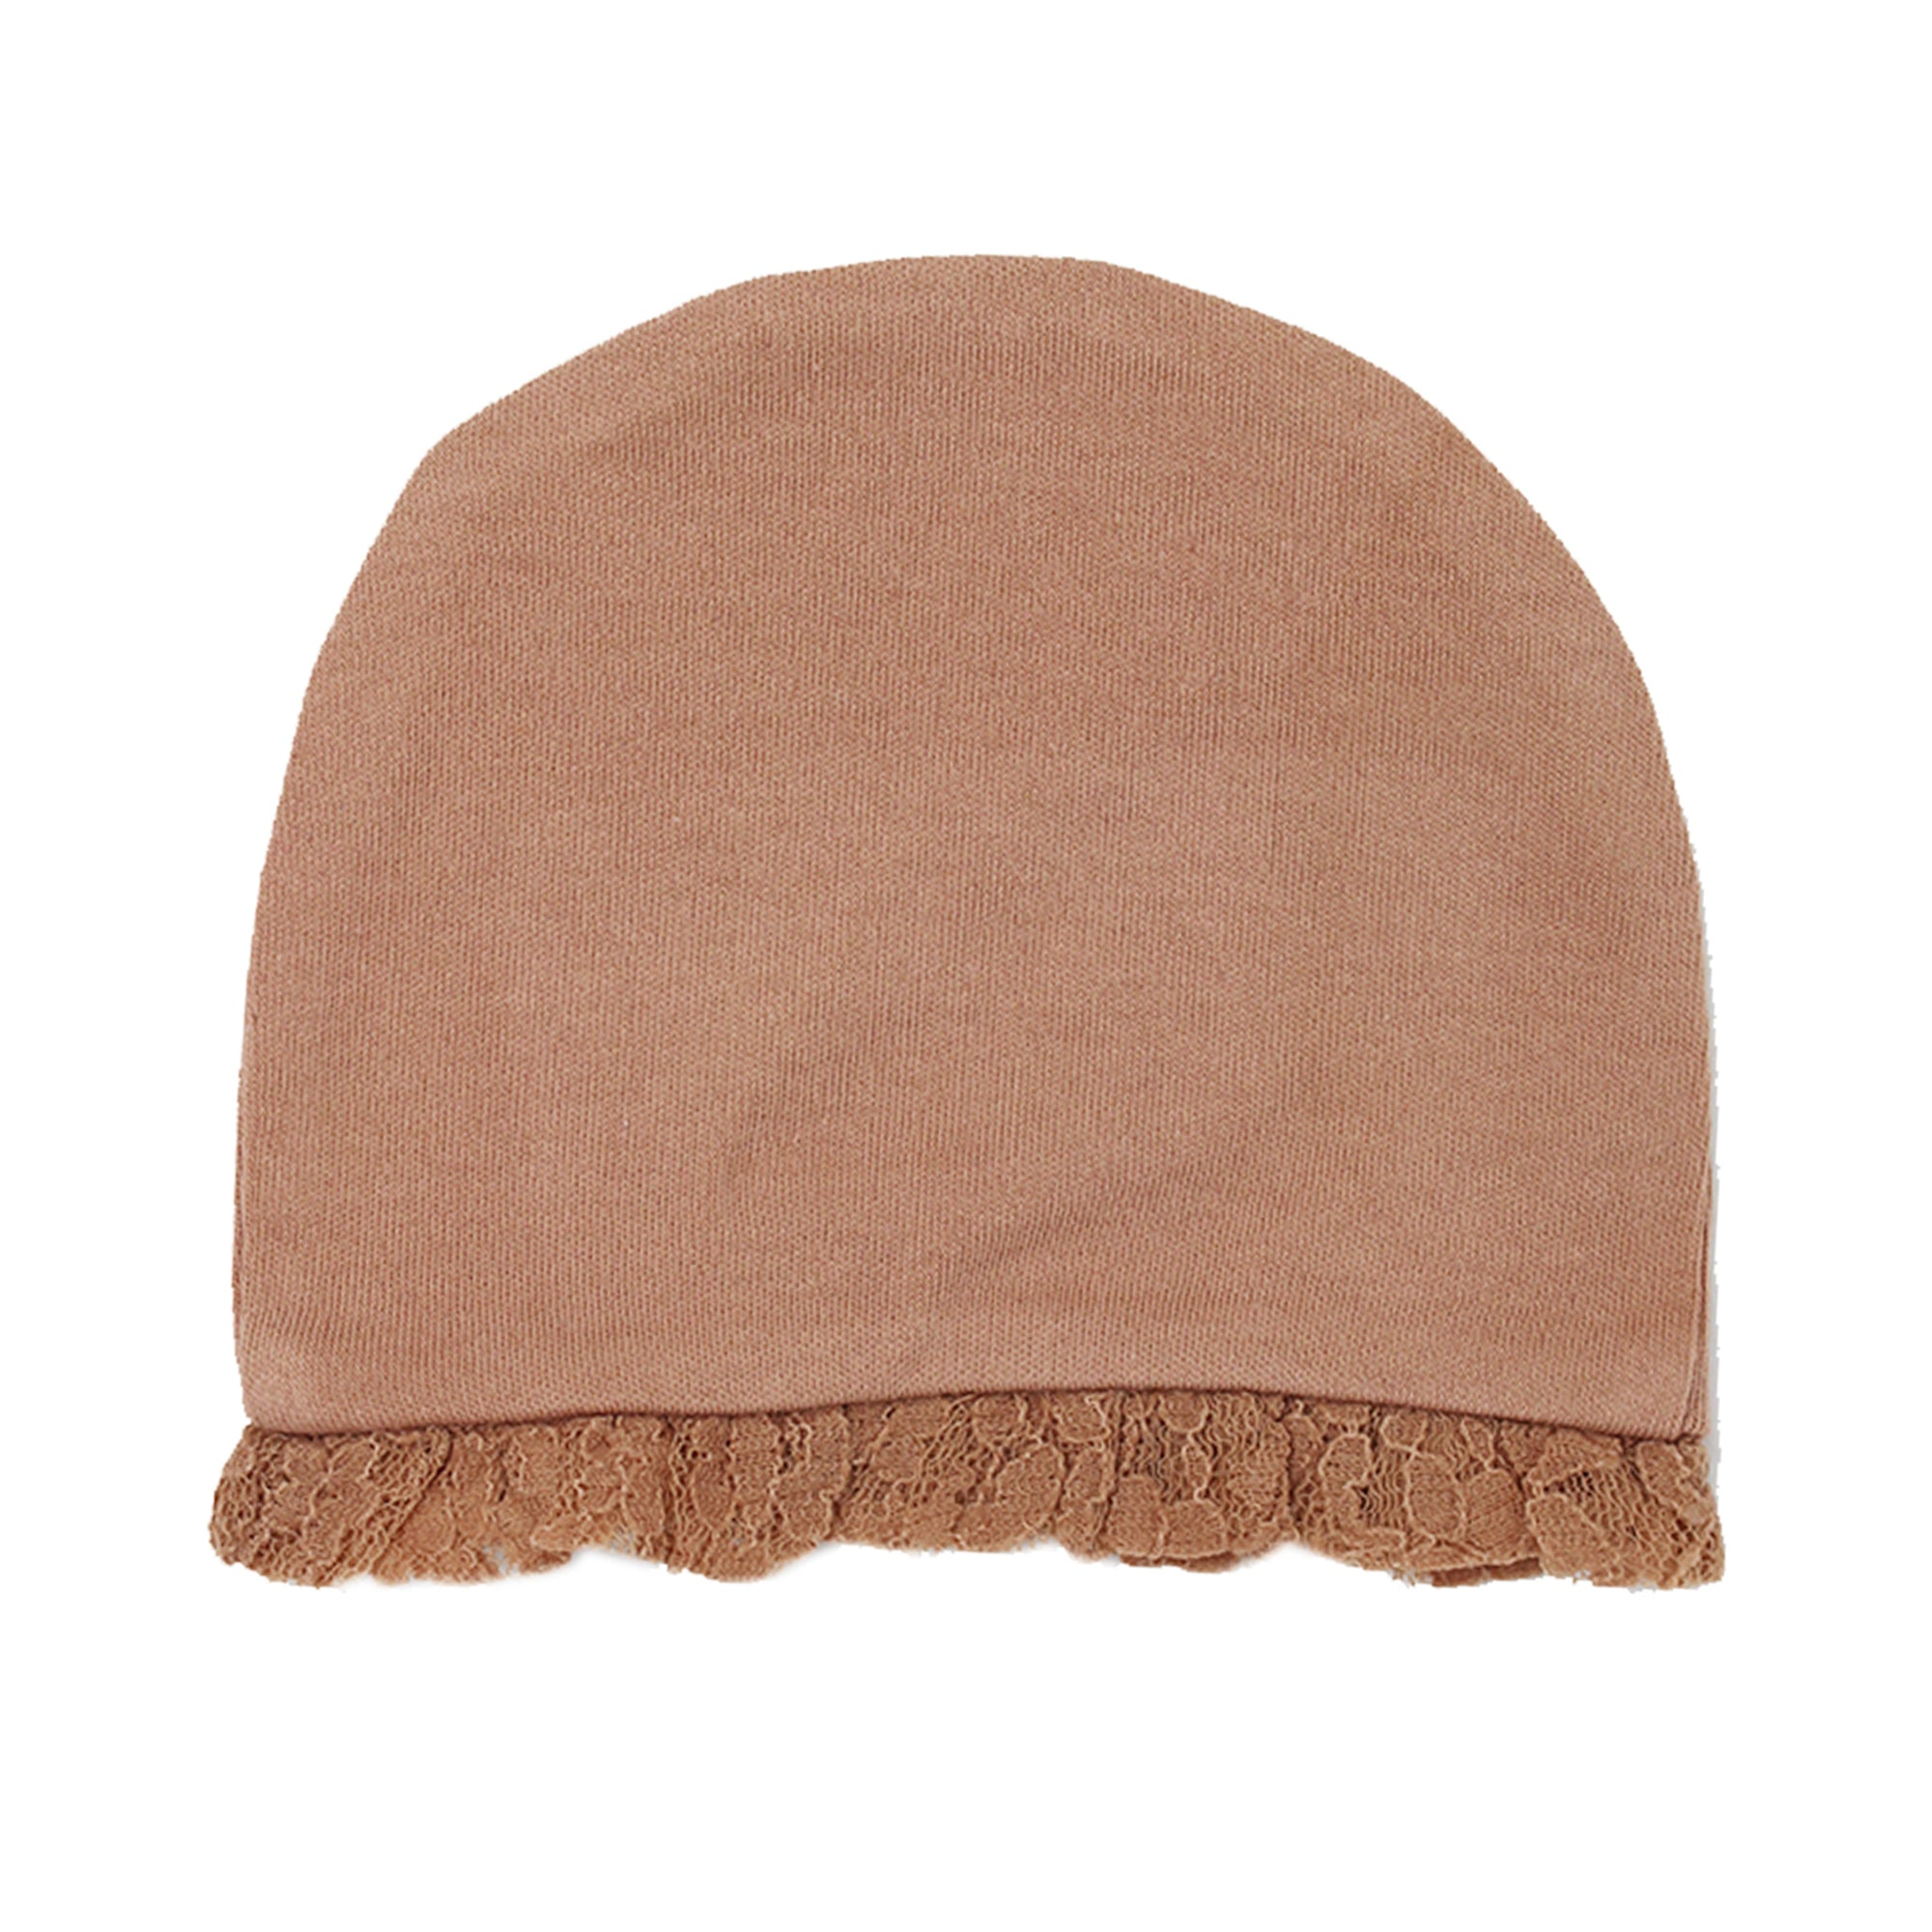 L'Oved Baby OR374 Organic Lace Ruffle Cap